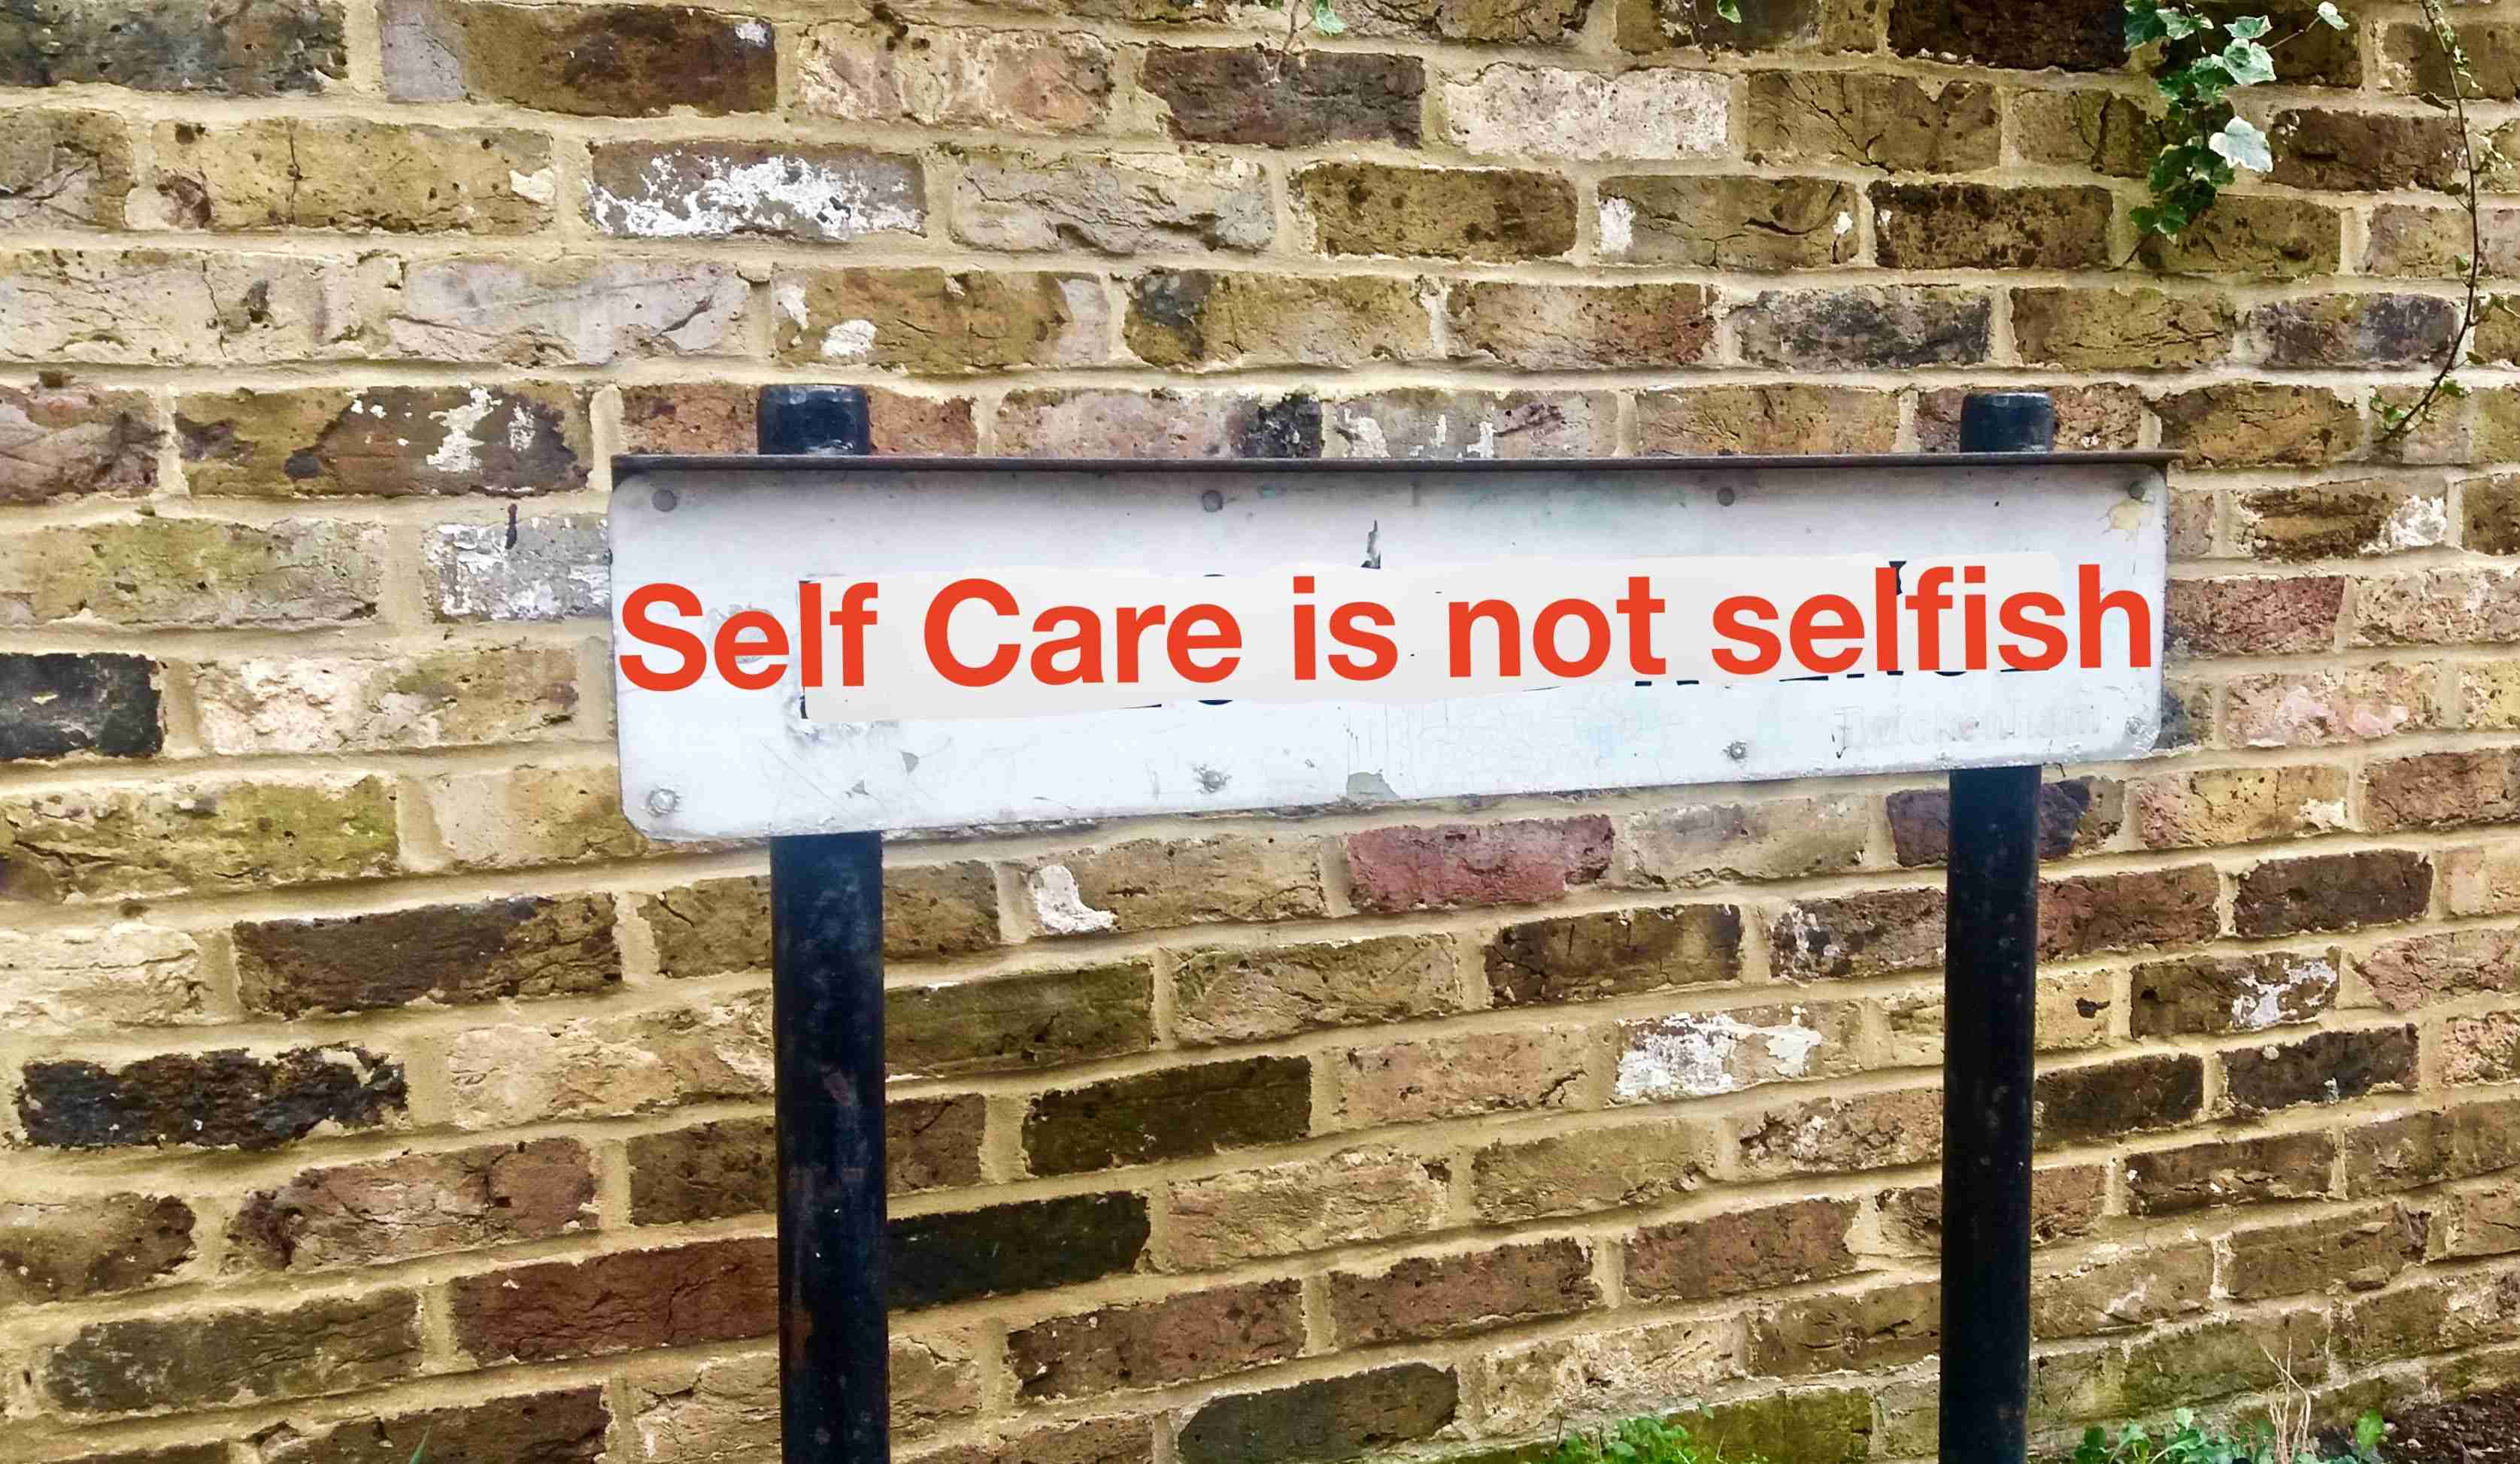 Self care is not selfish but essential (c) KarinSieger.com